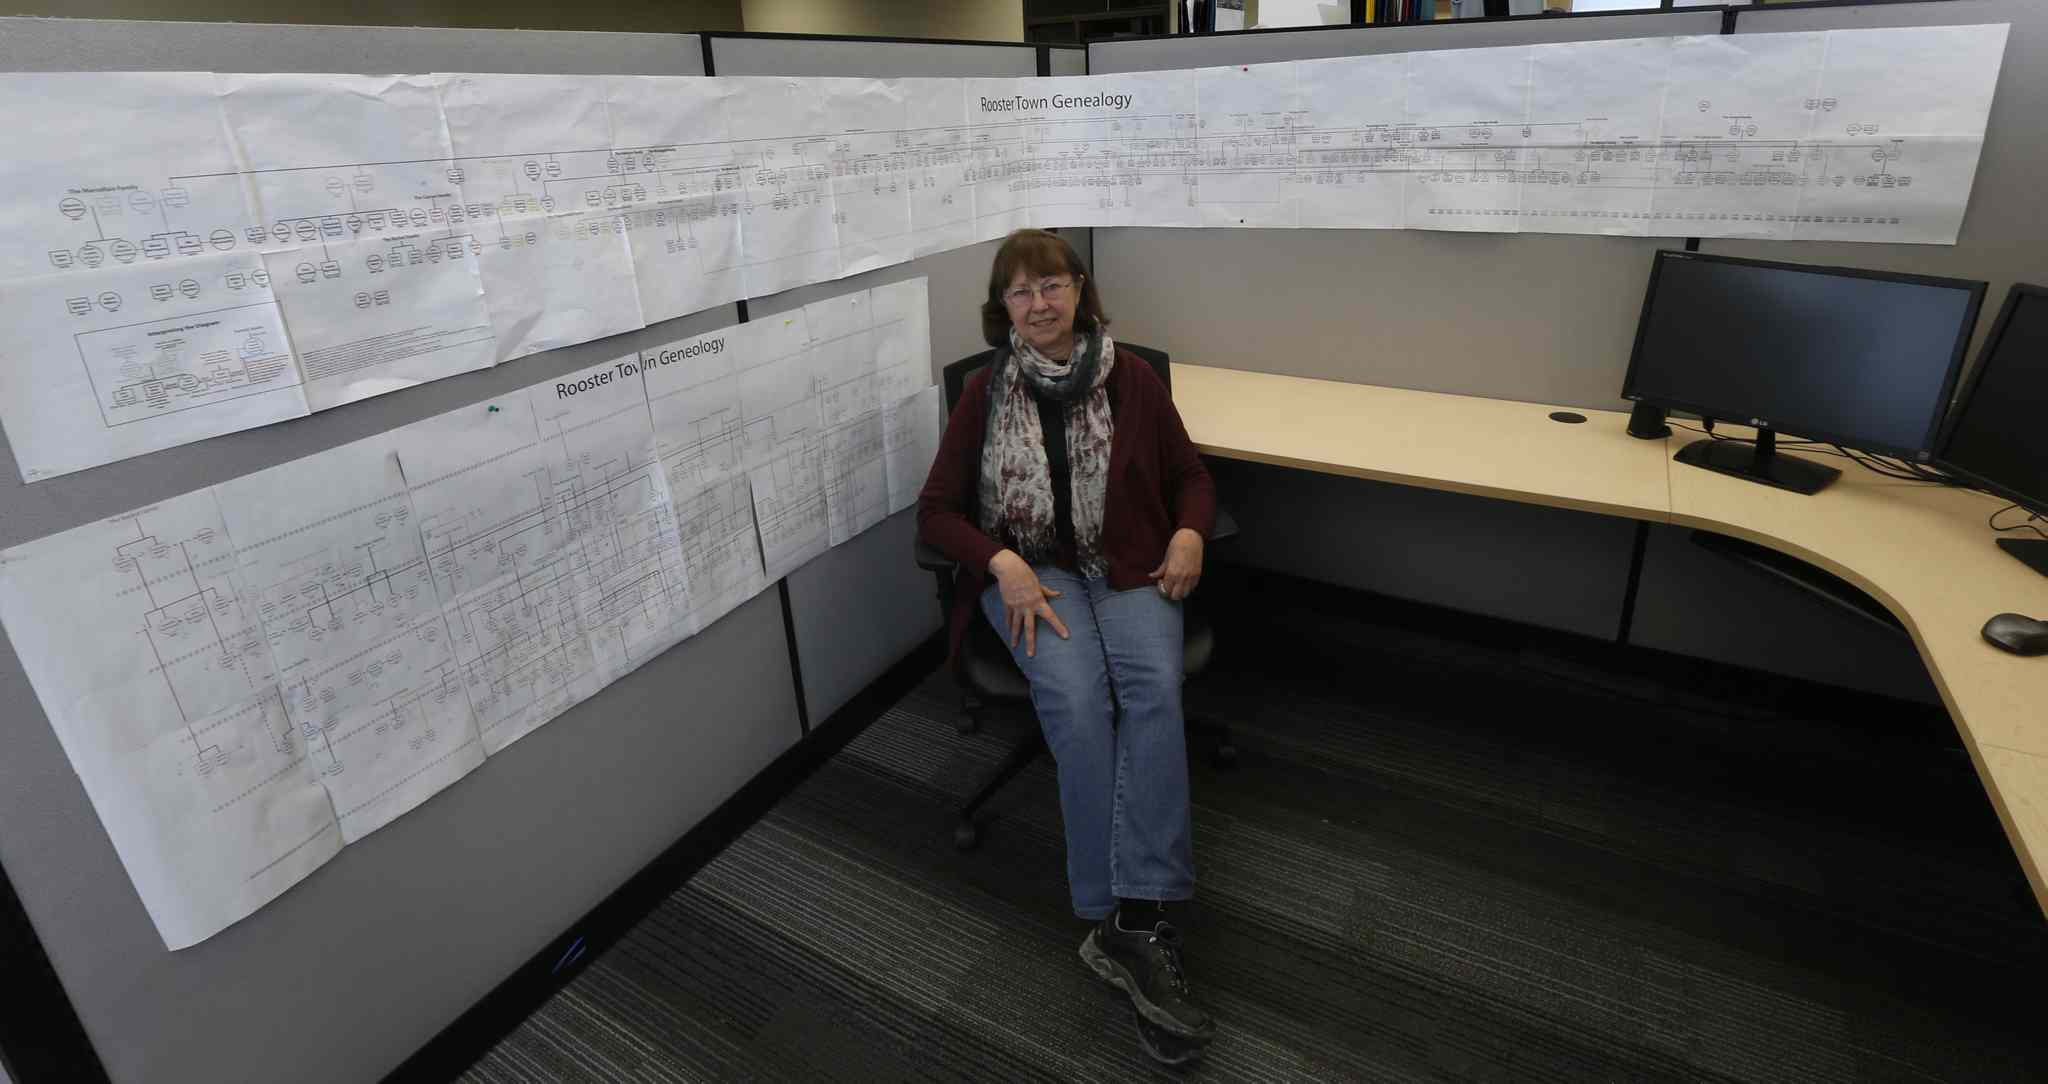 Evelyn Peters, a University of Winnipeg professor who has spent the last few years researching Rooster Town and its inhabitants, in a a research associate's office wrapped with a Rooster Town genealogy that spans 60 years.